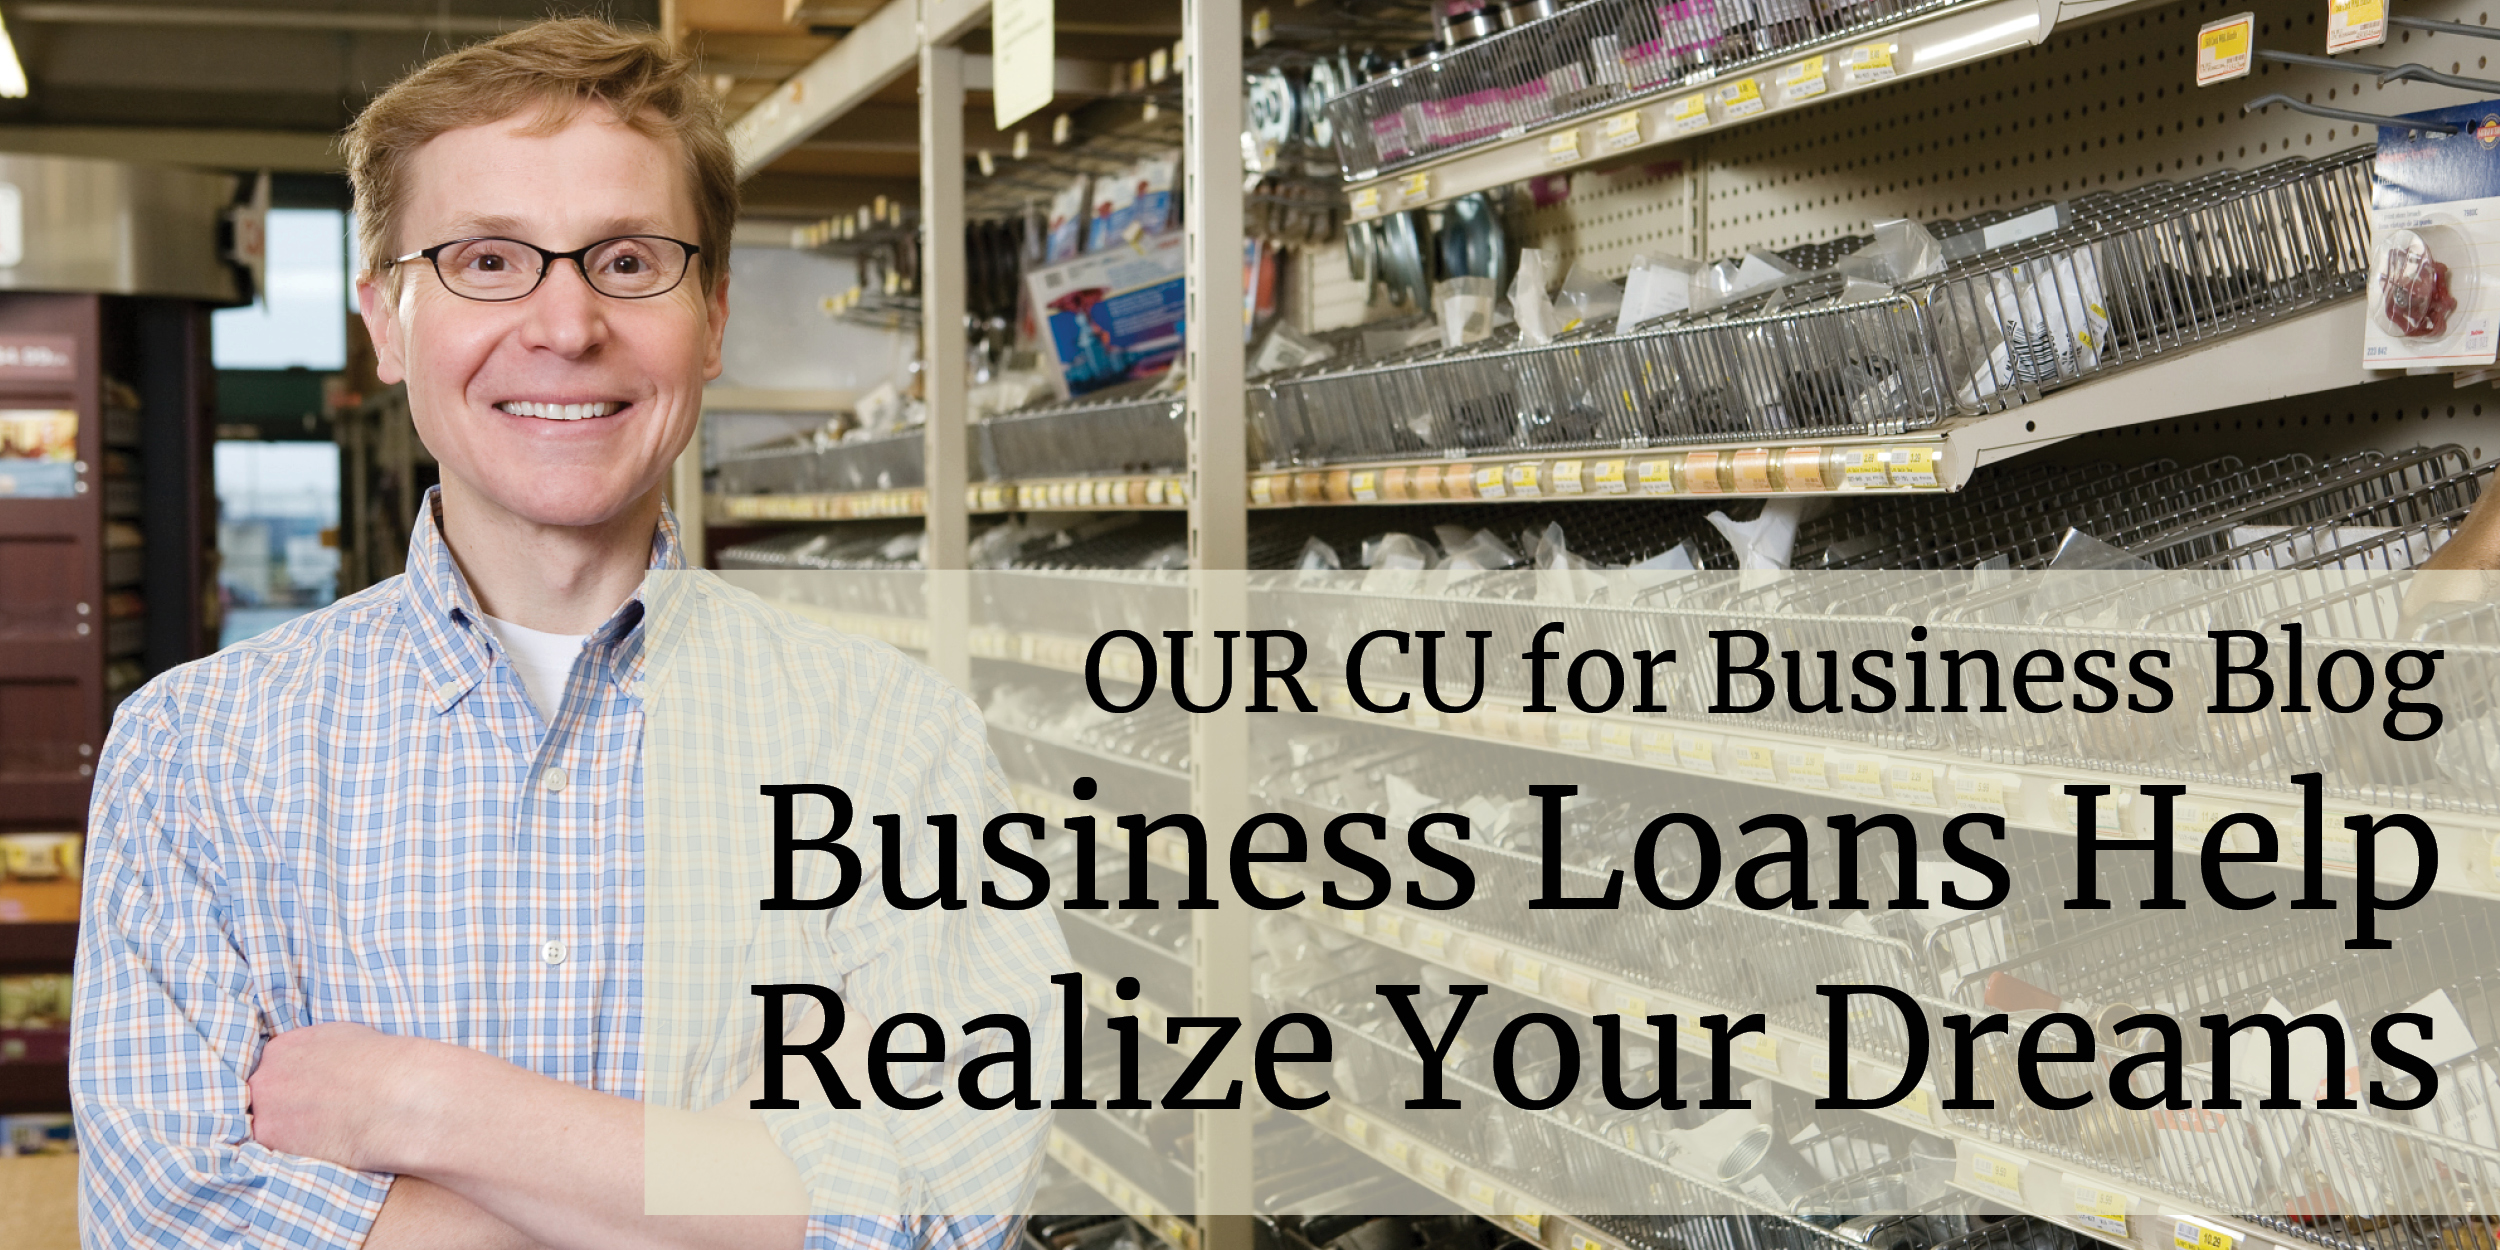 Business Loans Help Realize Your Dreams